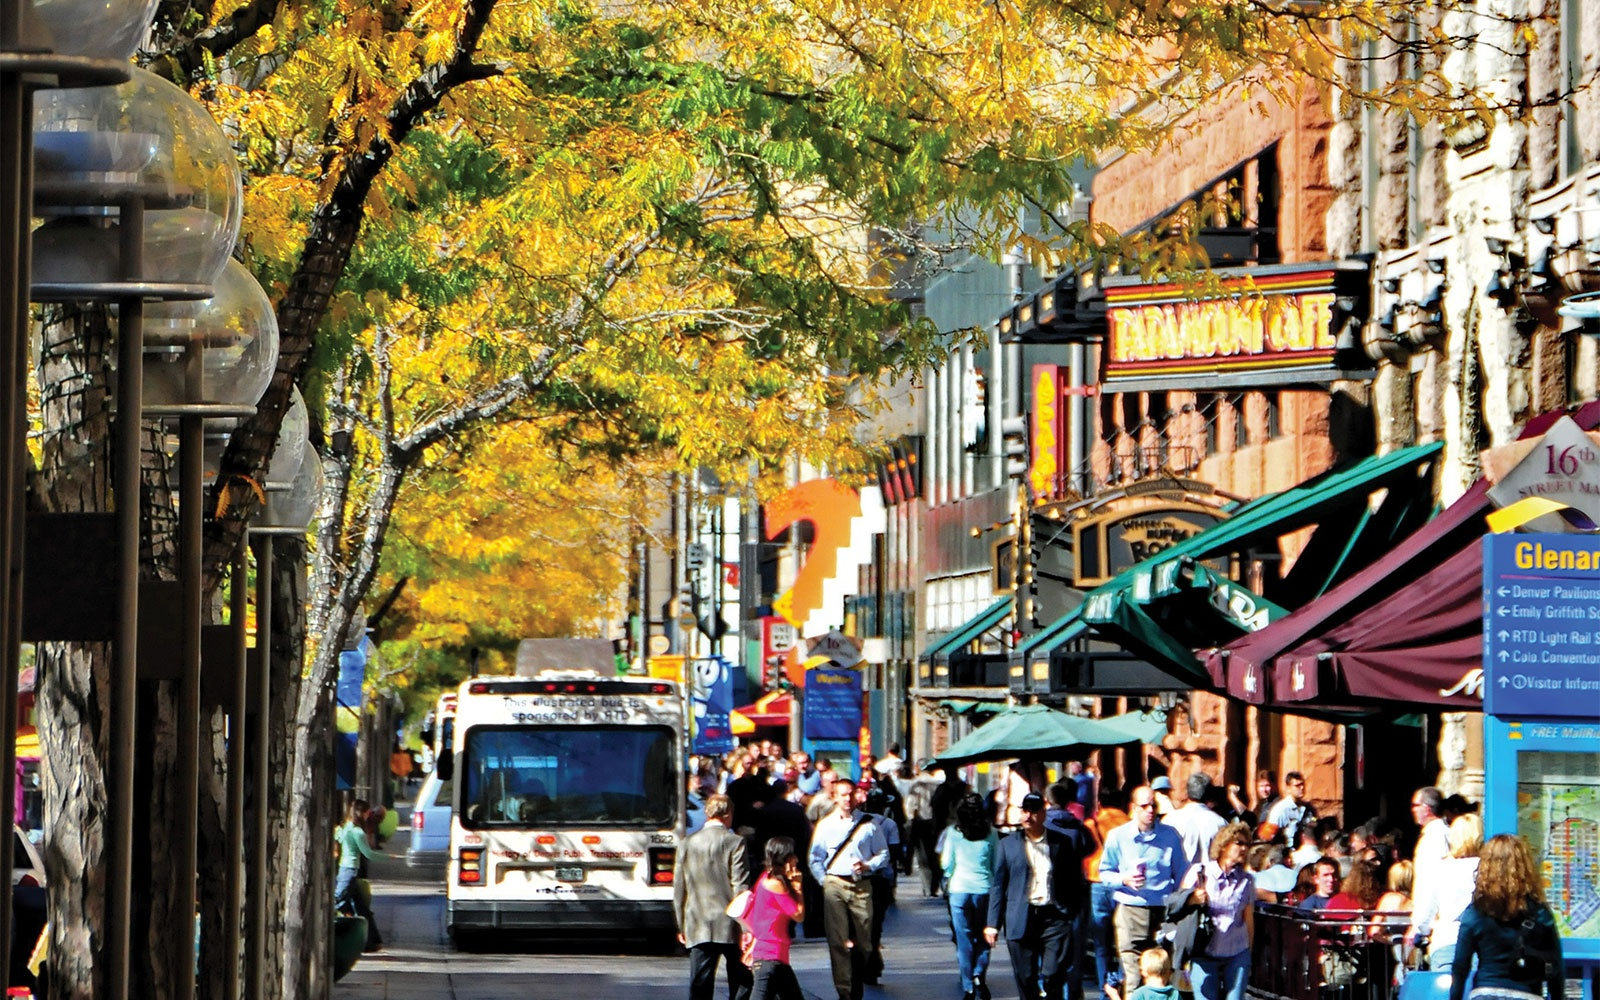 Denver, Colorado in the fall